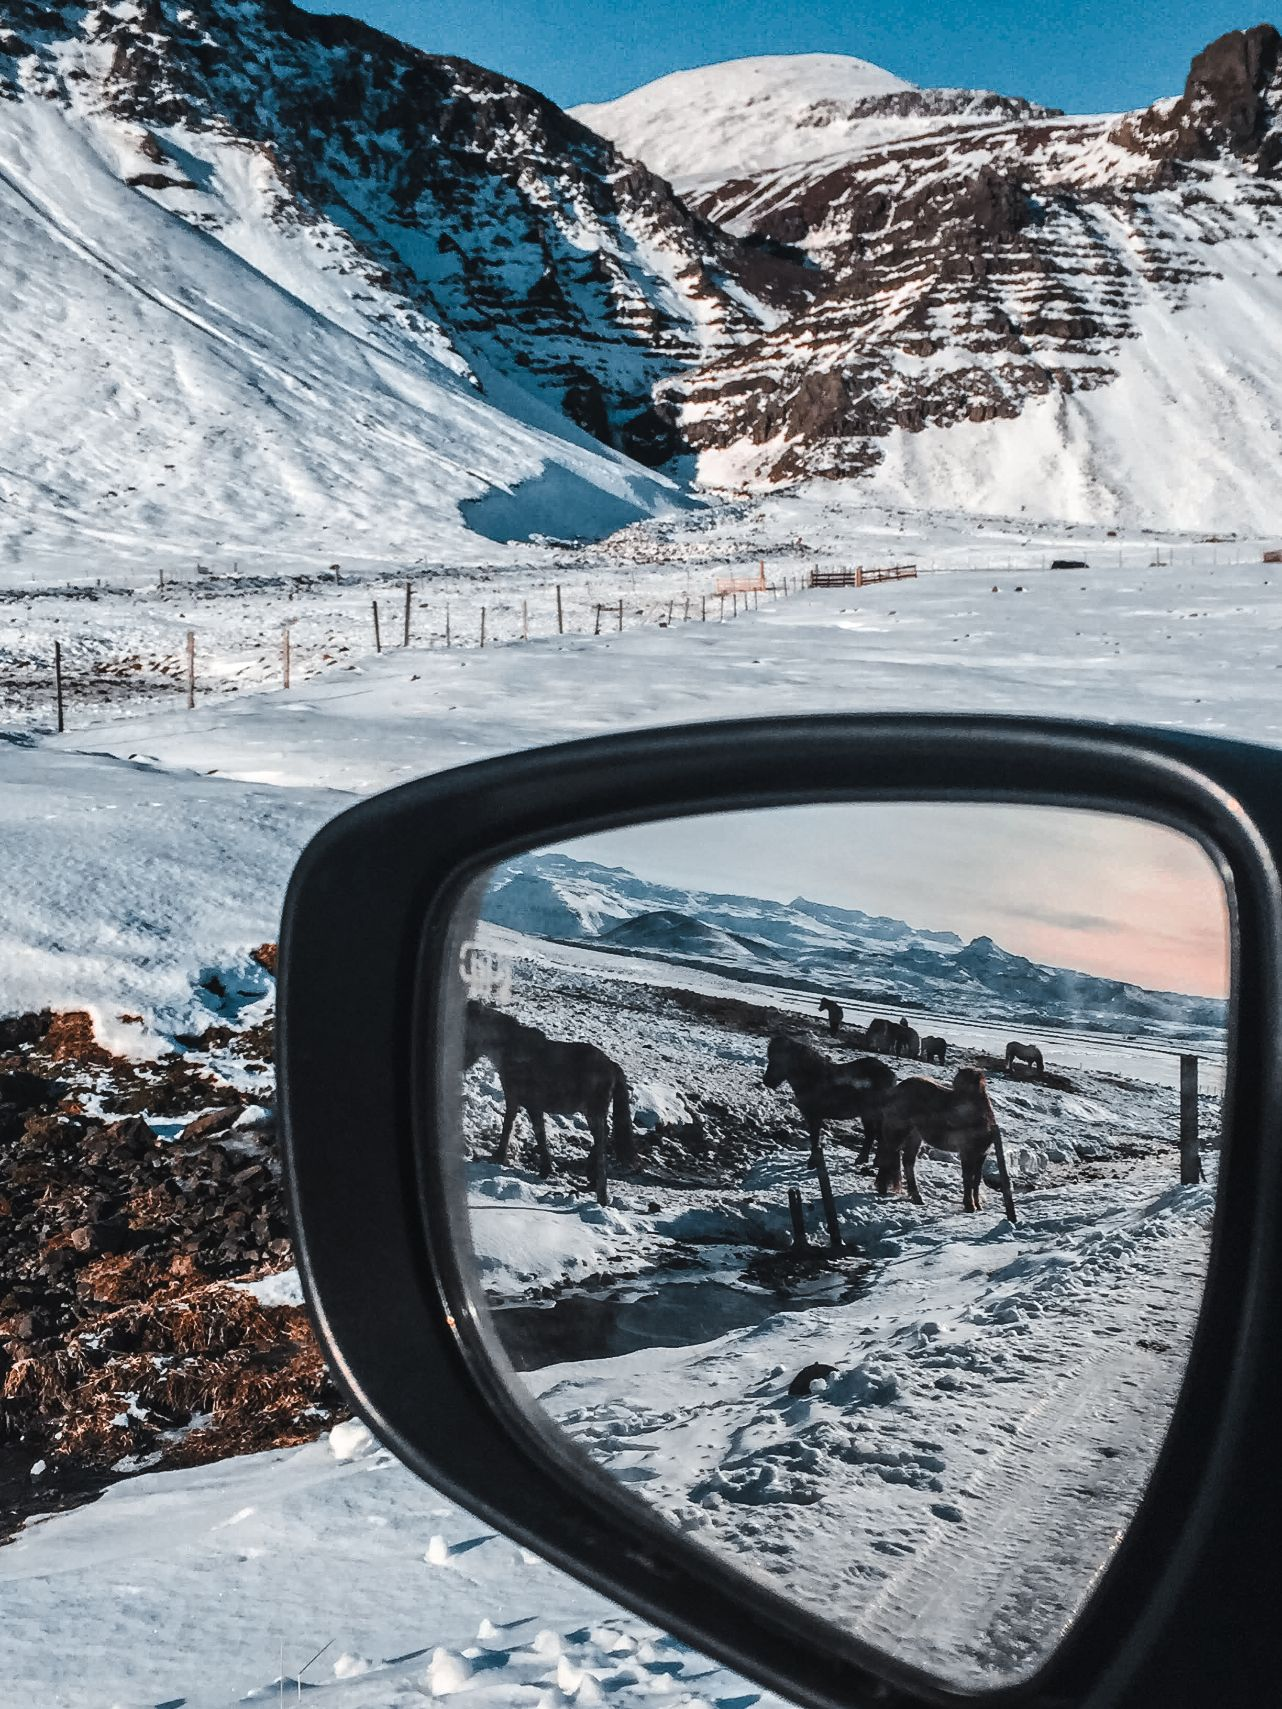 Side mirror view of Icelandic horses in winter with snow and mountains in background during roadside stop in 24 hour Iceland itinerary